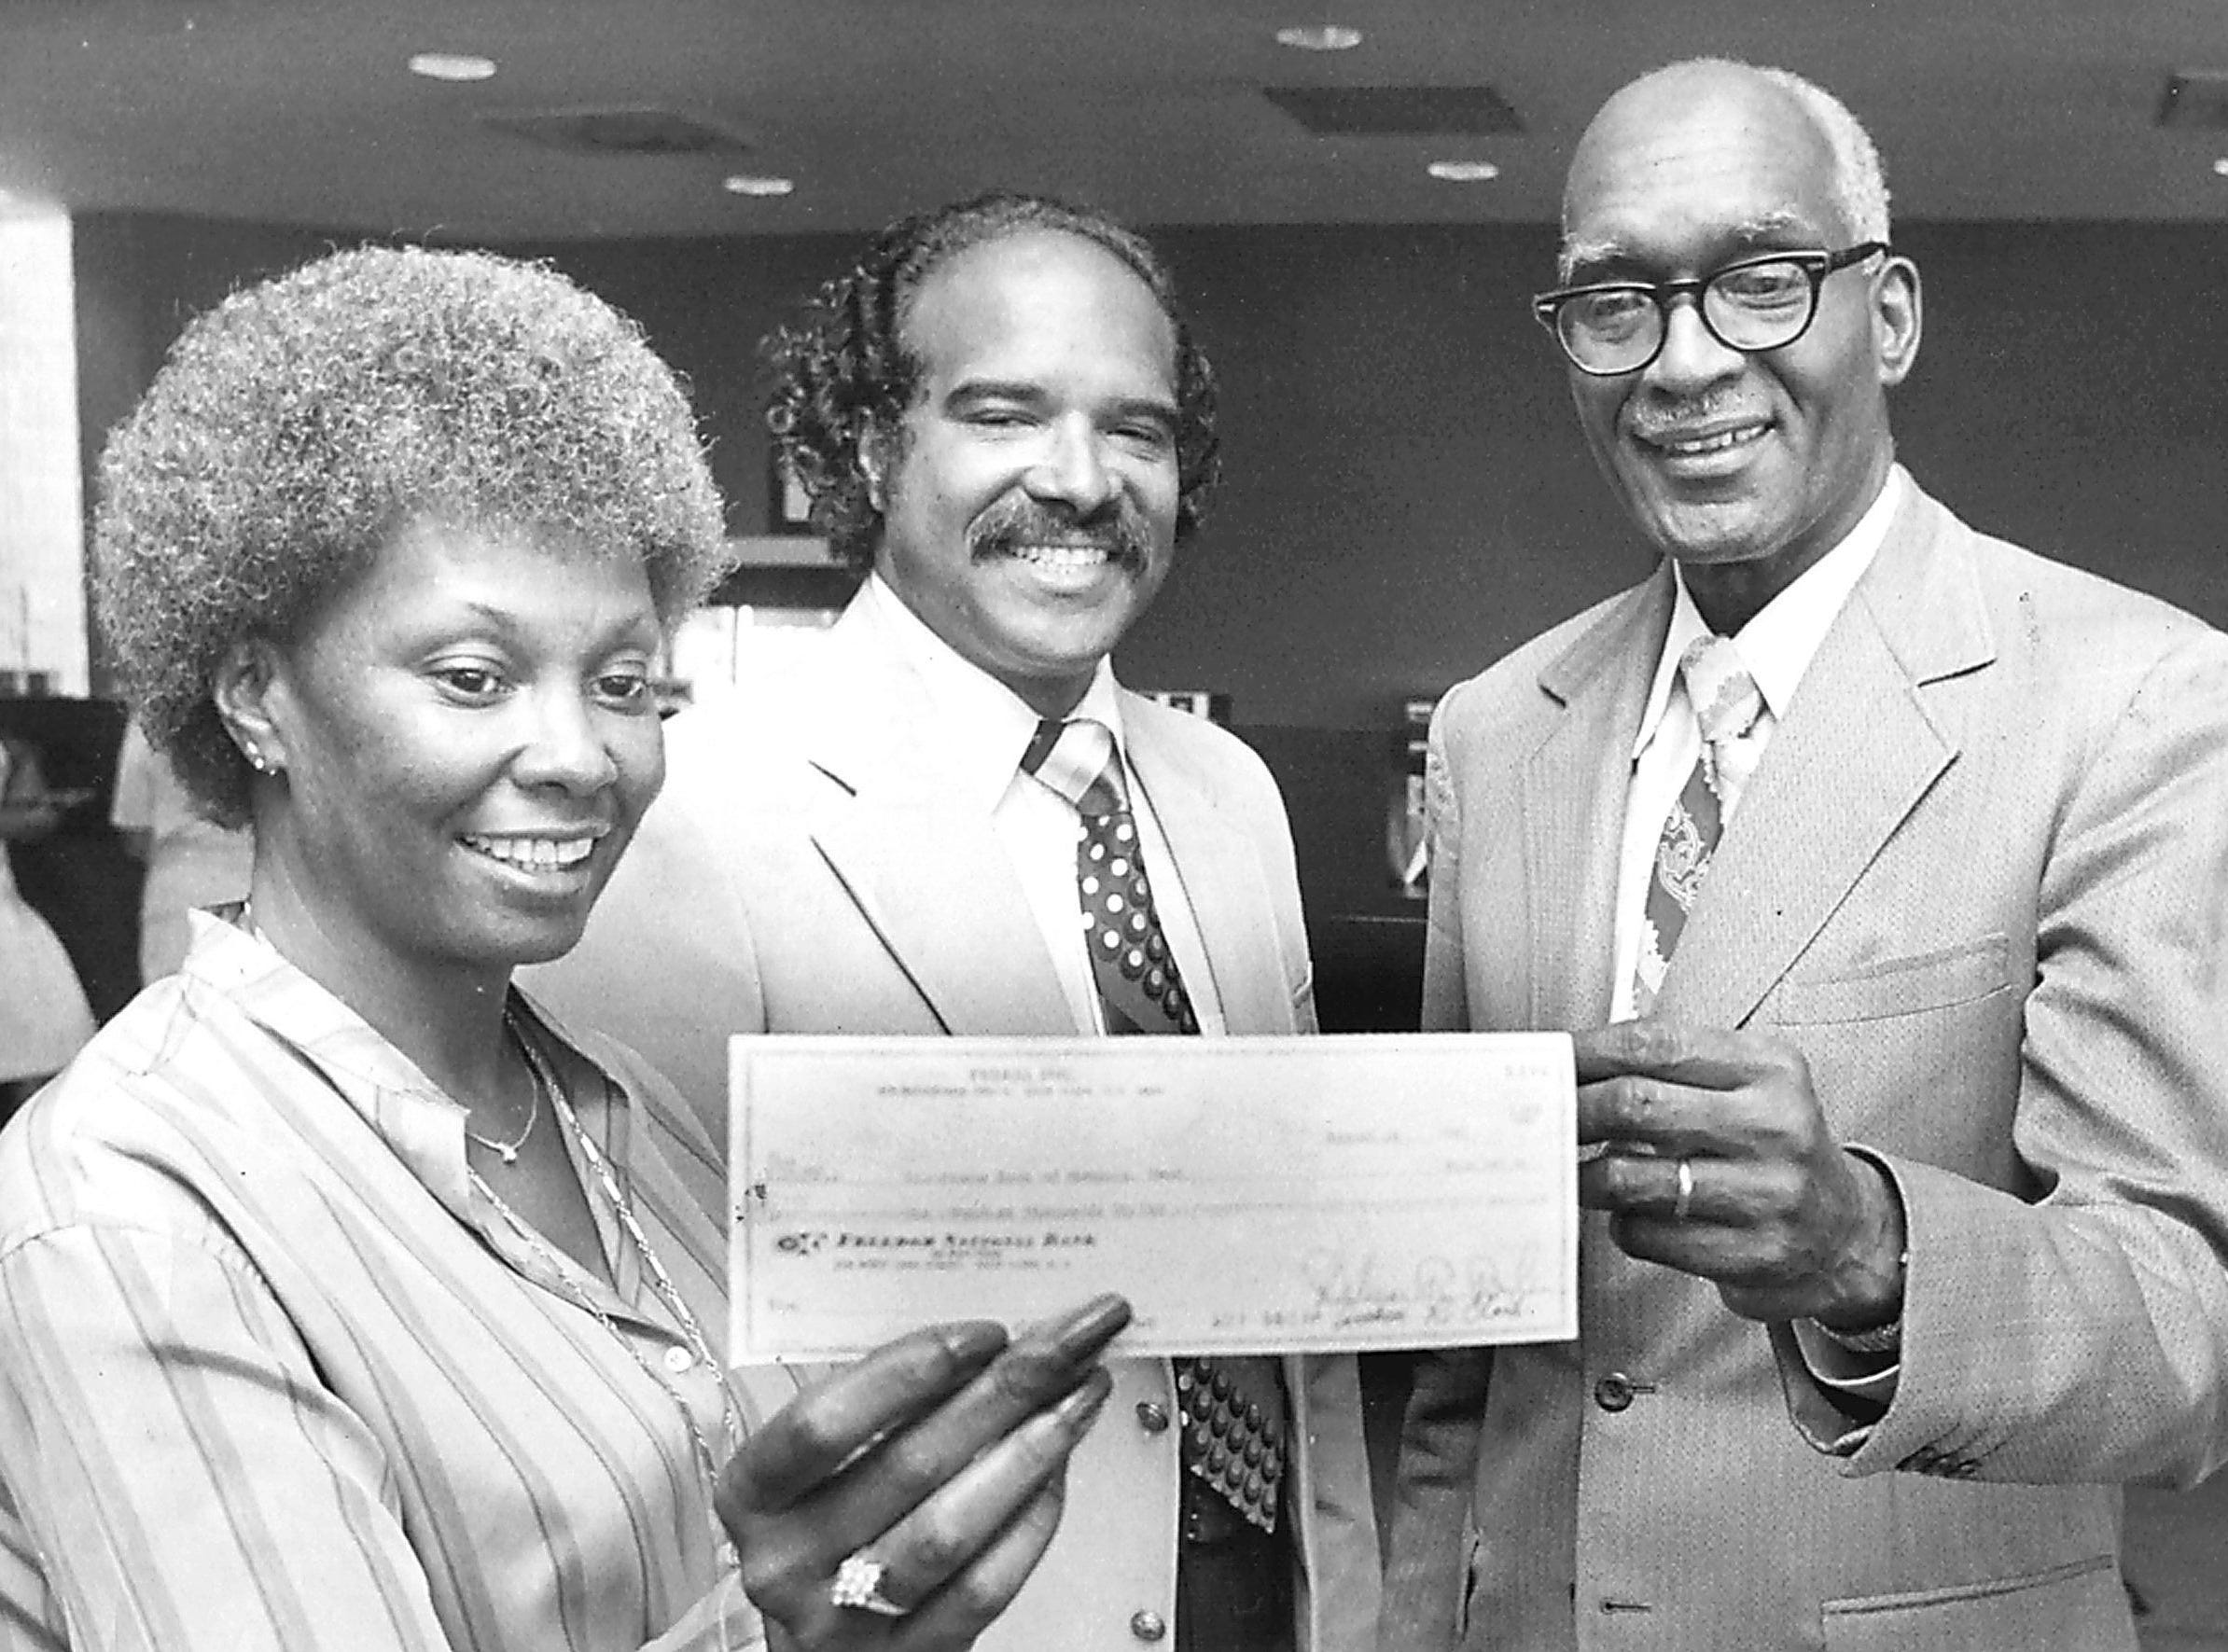 Elaine Williams (Left), loan officer of Presbyterian Economic Development Corp. of New York, holds a check for $100,000 that was deposited in Tri-State Bank of Memphis as venture capital for businesses setting up shop on Beale Street on 21 Aug 1980. George B. Miller (Center), executive director of Beale Street Development Corp and Tri-State president and chief executive officer Jesse Turner look on. Restoration of the historic street continues between Third and Fourth.